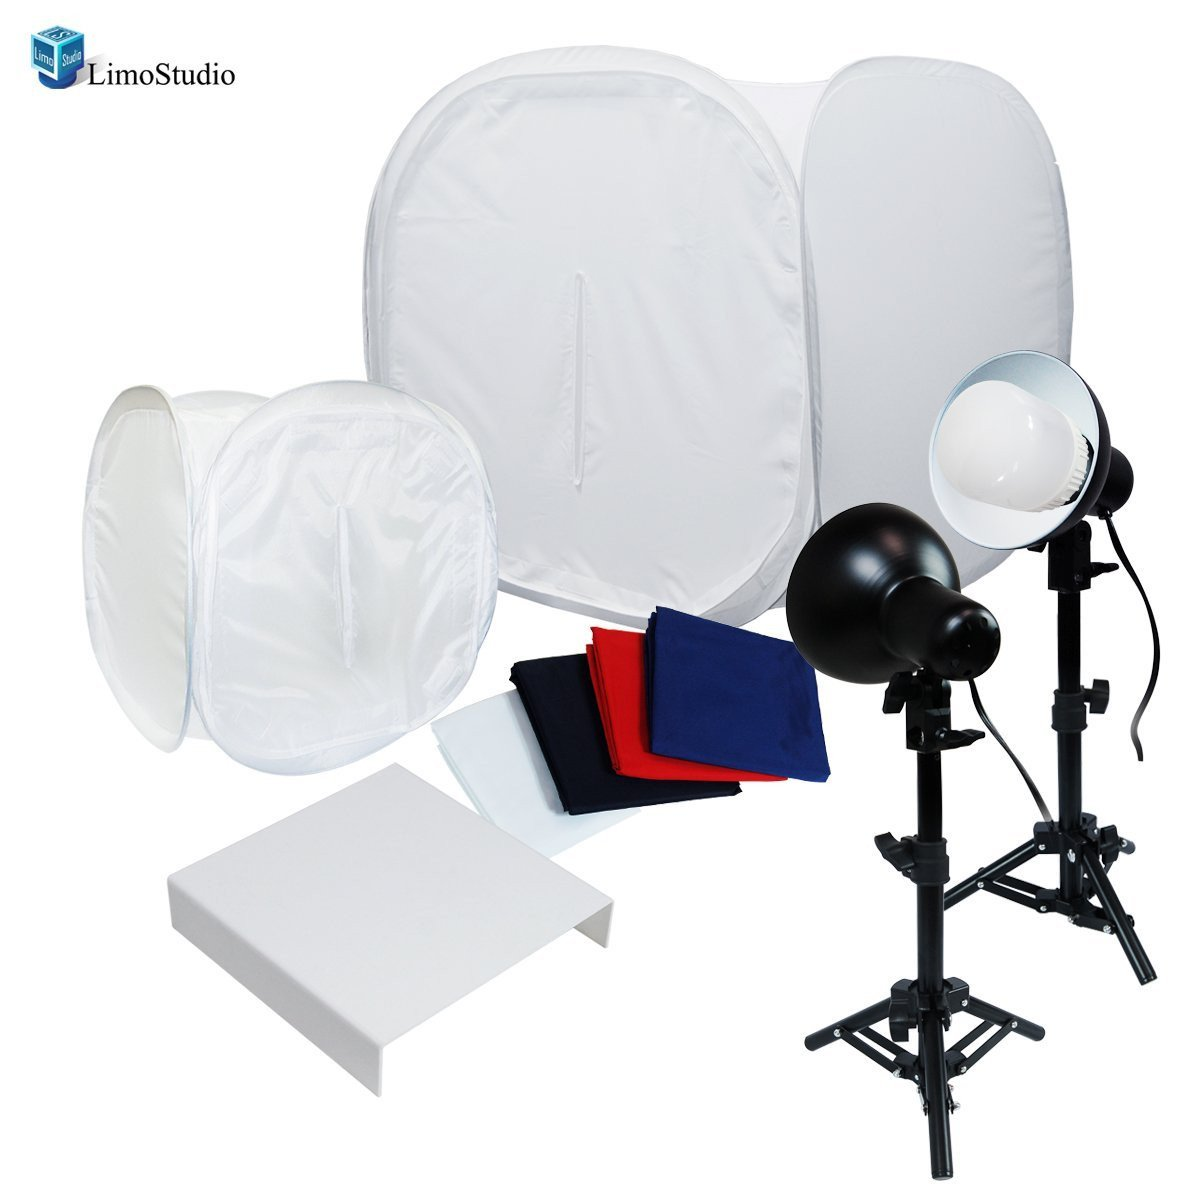 30  Table Top Light Kit Lighting Soft Box Photography Lighting Tent Kit LED Lighting Photo Light Set with Cl& and Acrylic Table AGG1263V2  sc 1 st  Limostudio & 30